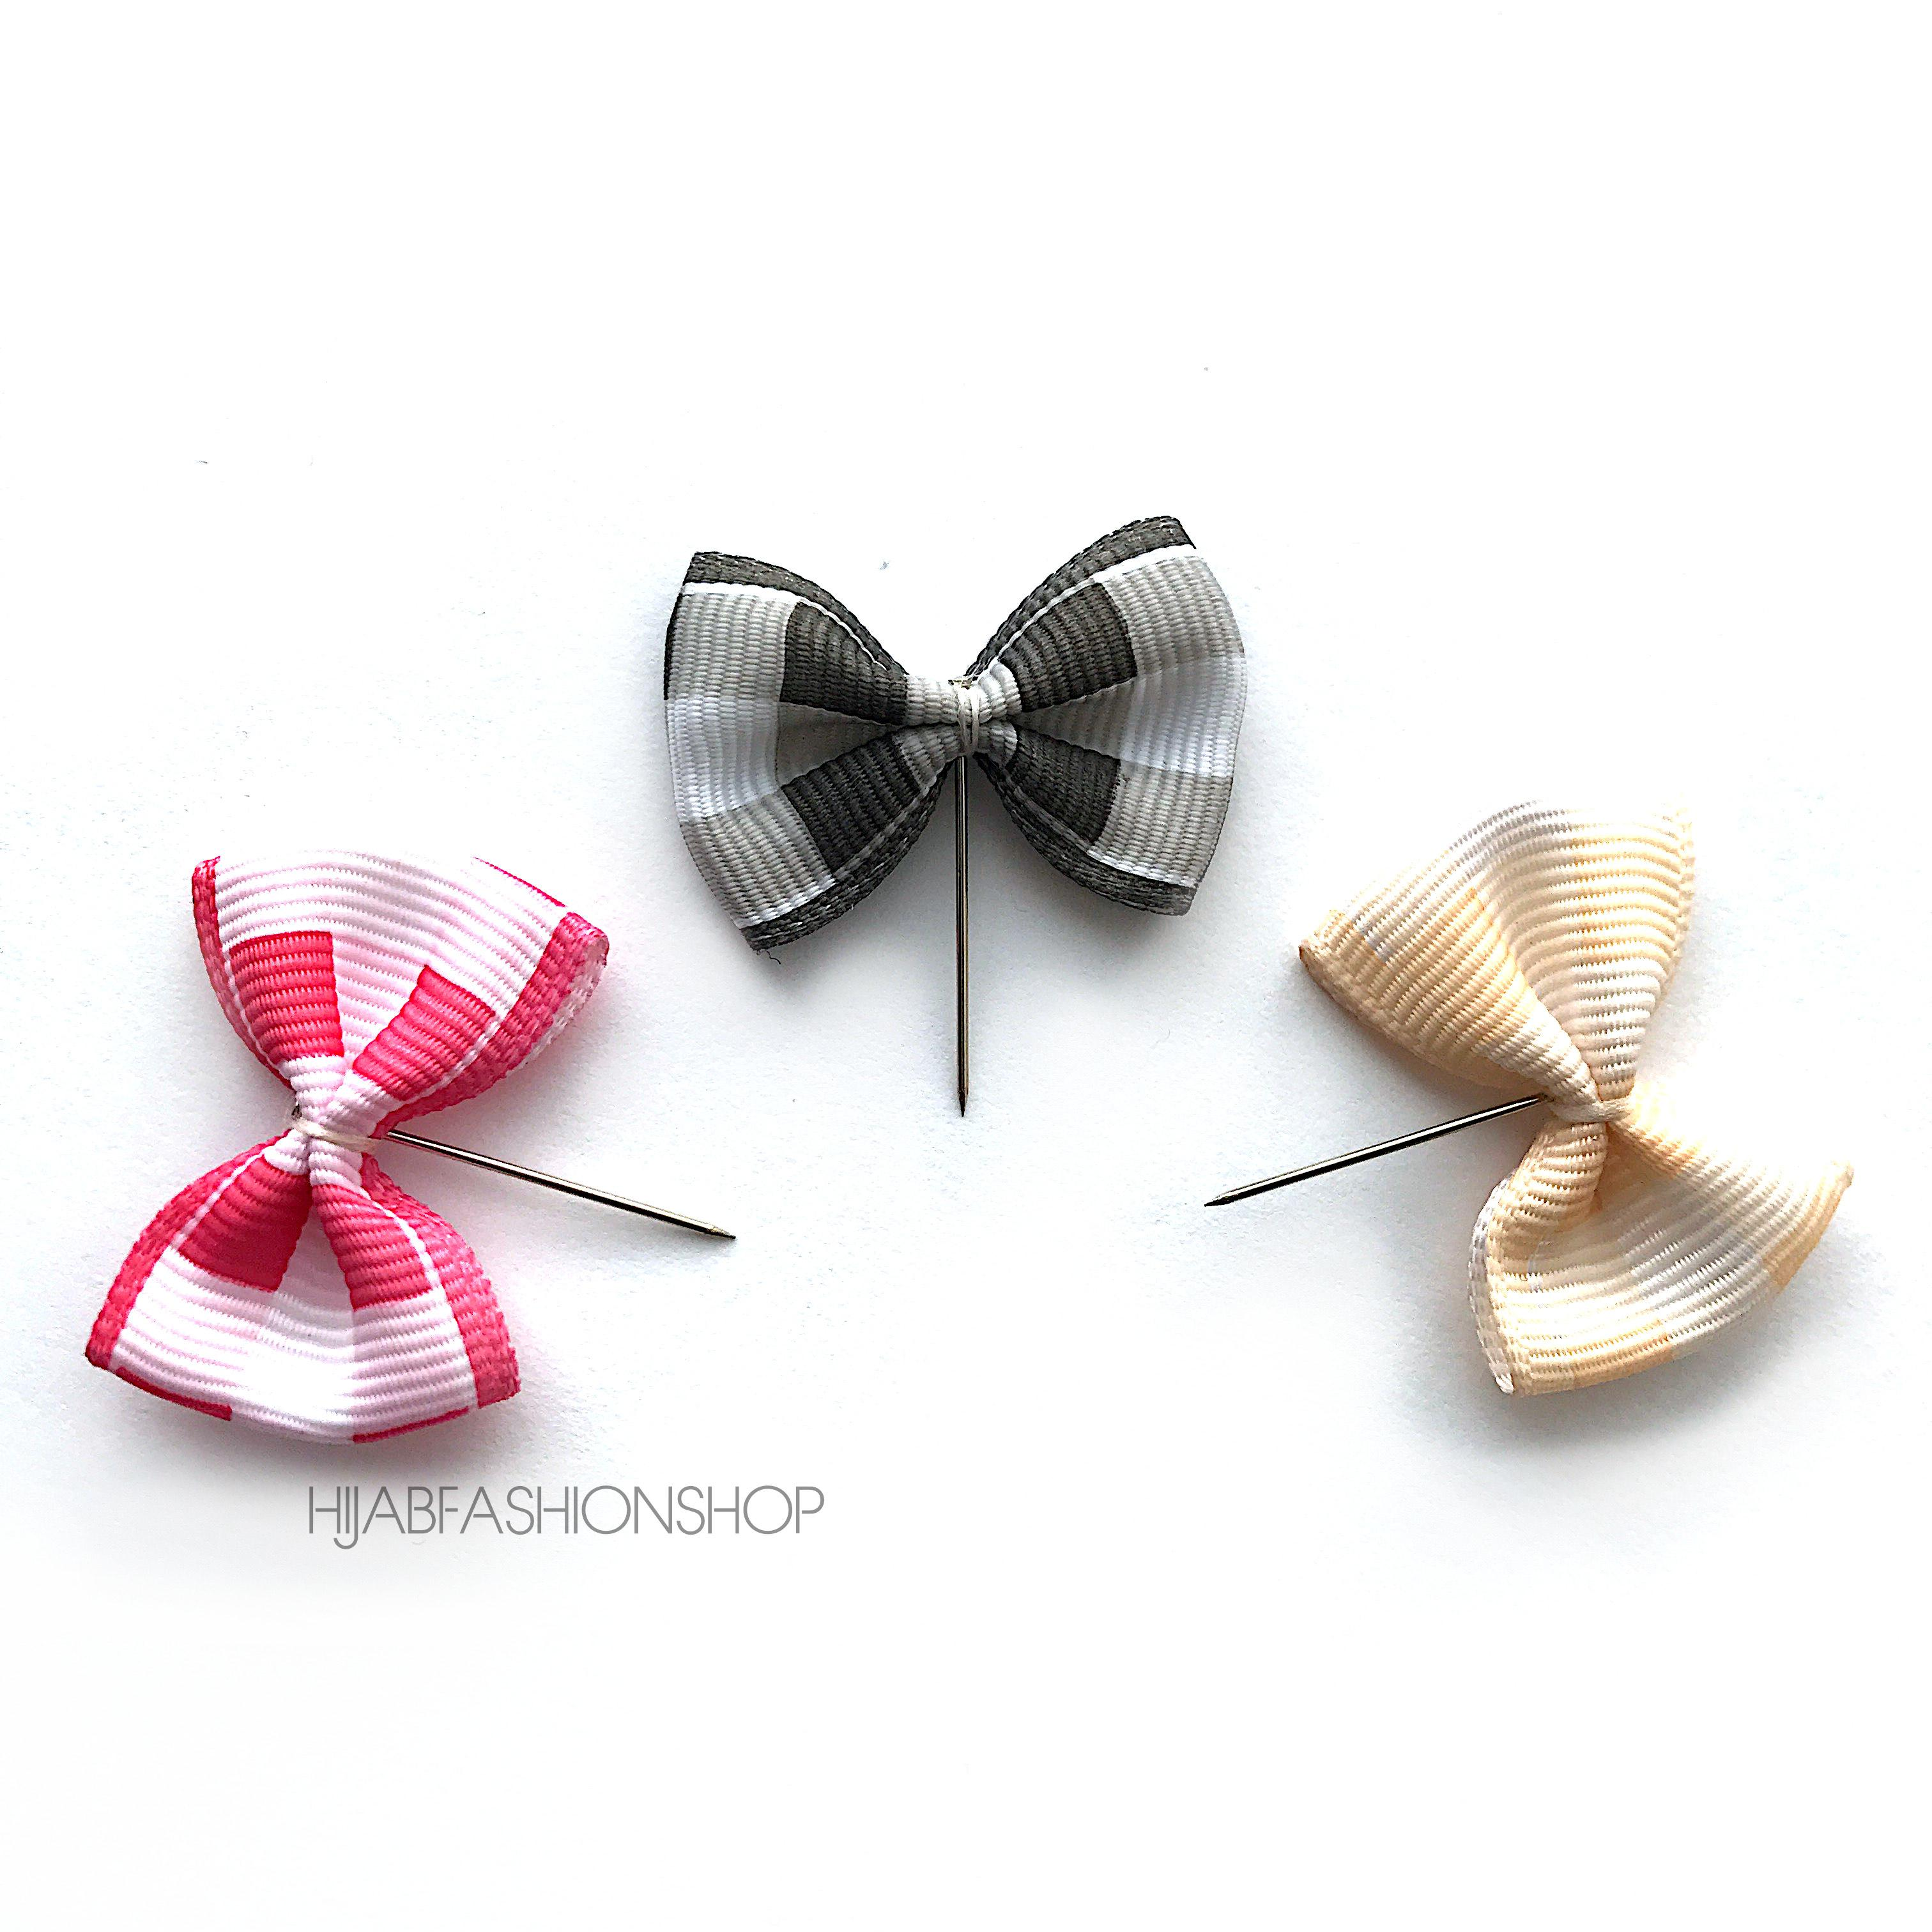 three checked bow hijab pins in red, cream and black